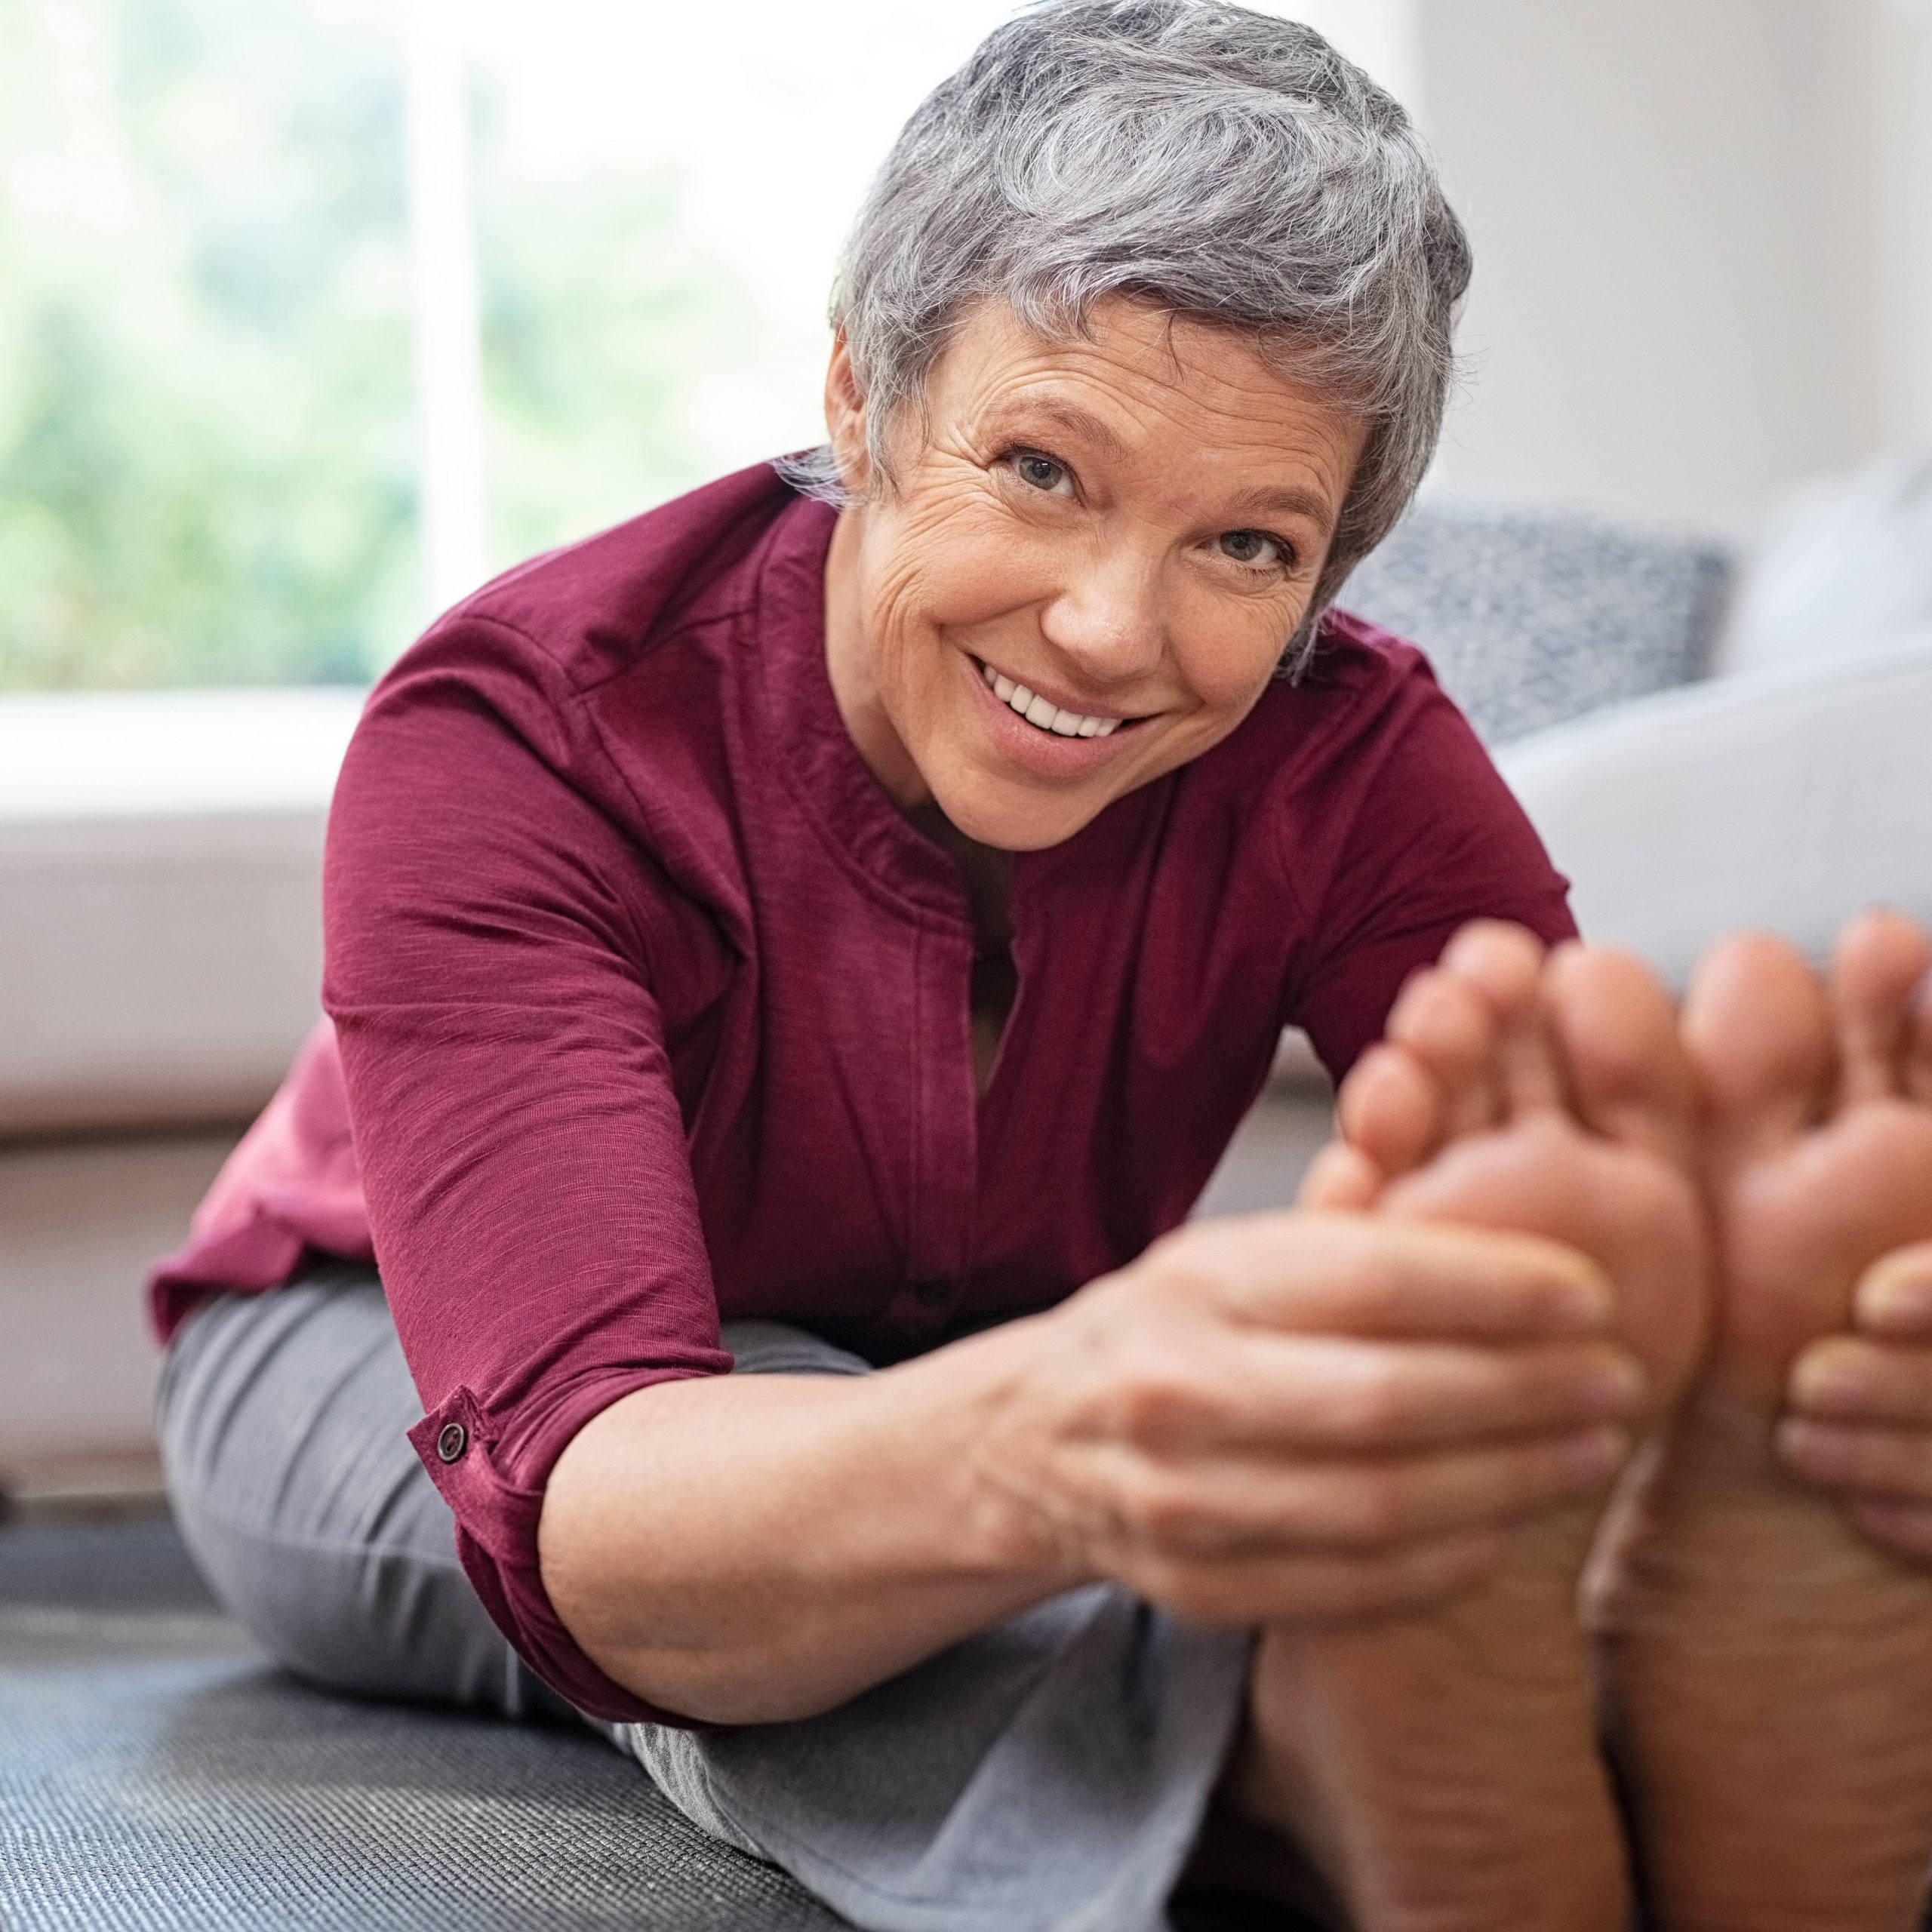 a smiling older woman seated on a yoga mat, doing stretches